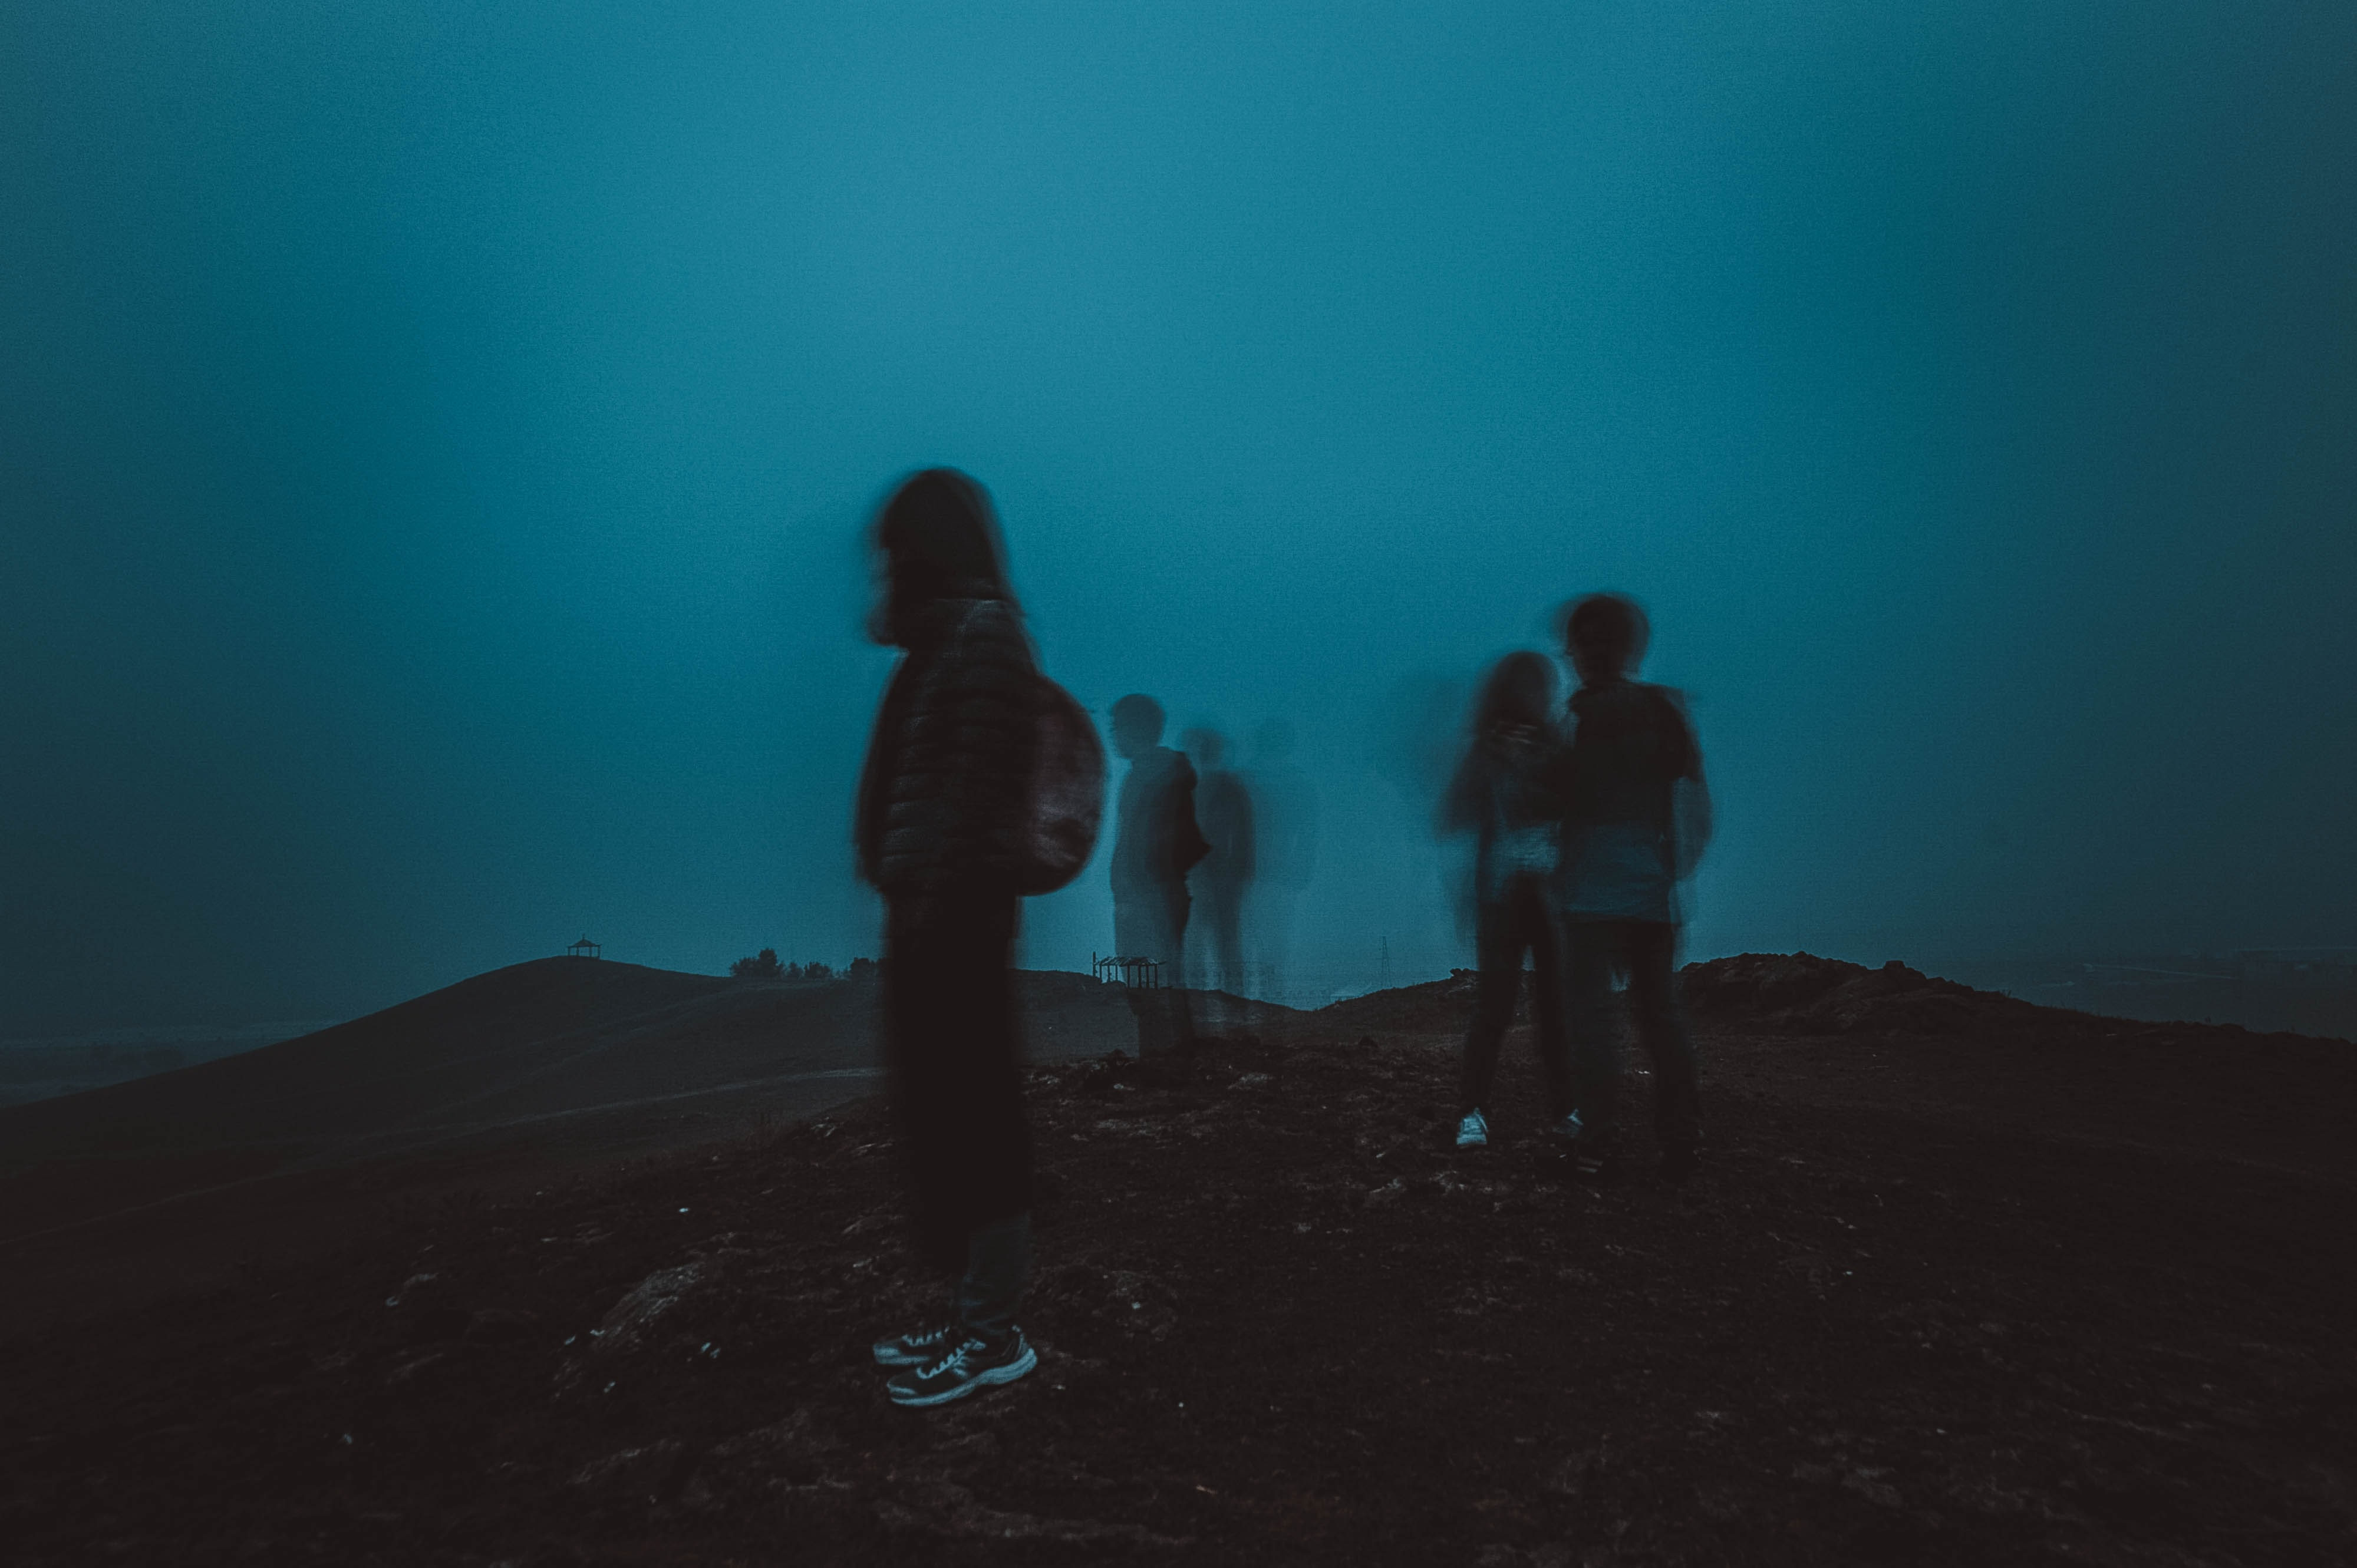 people standing on mountain